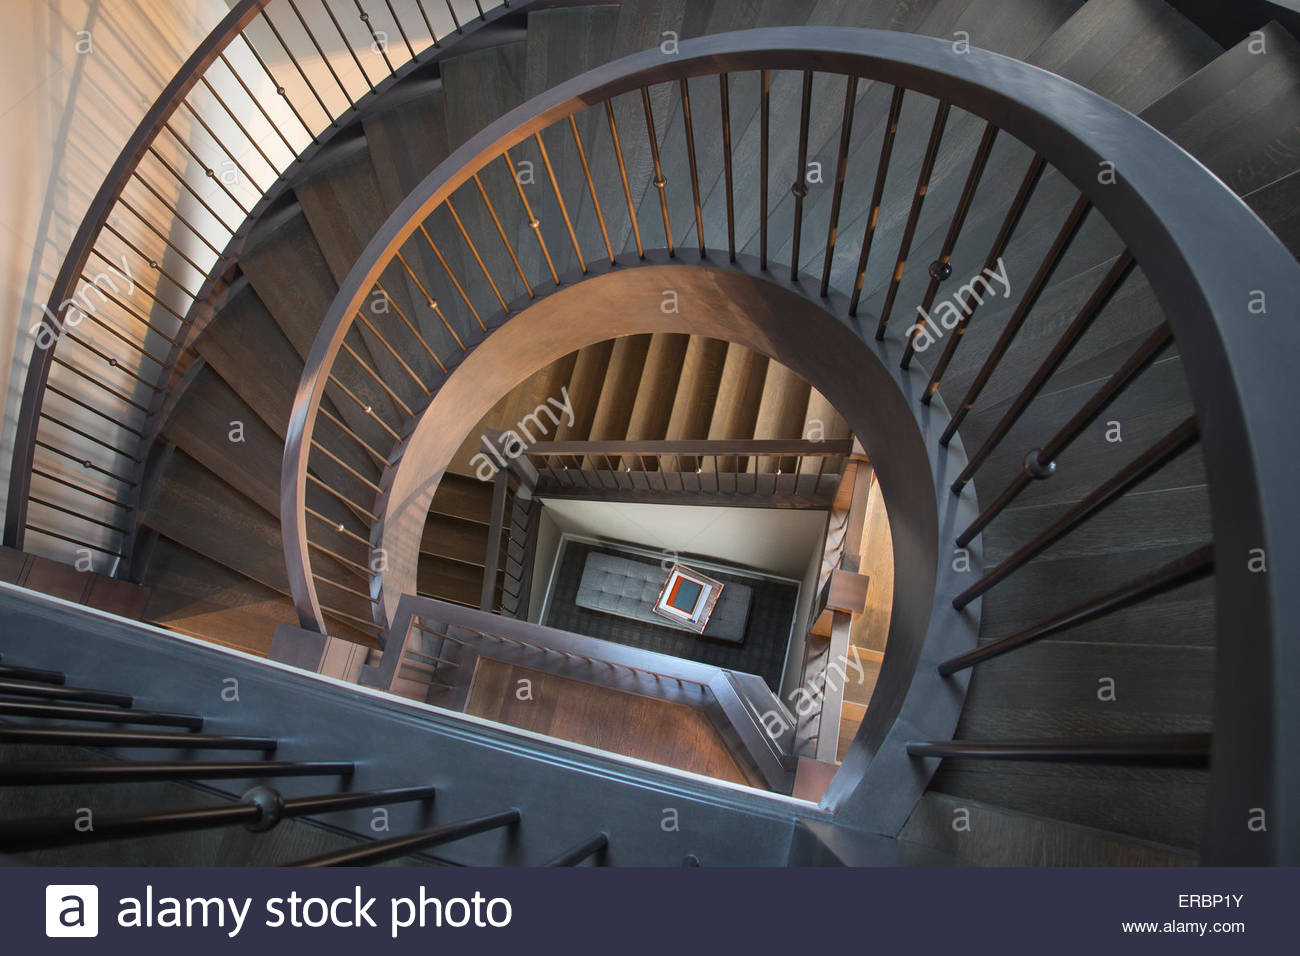 View from above of spiraling staircase - Stock Image